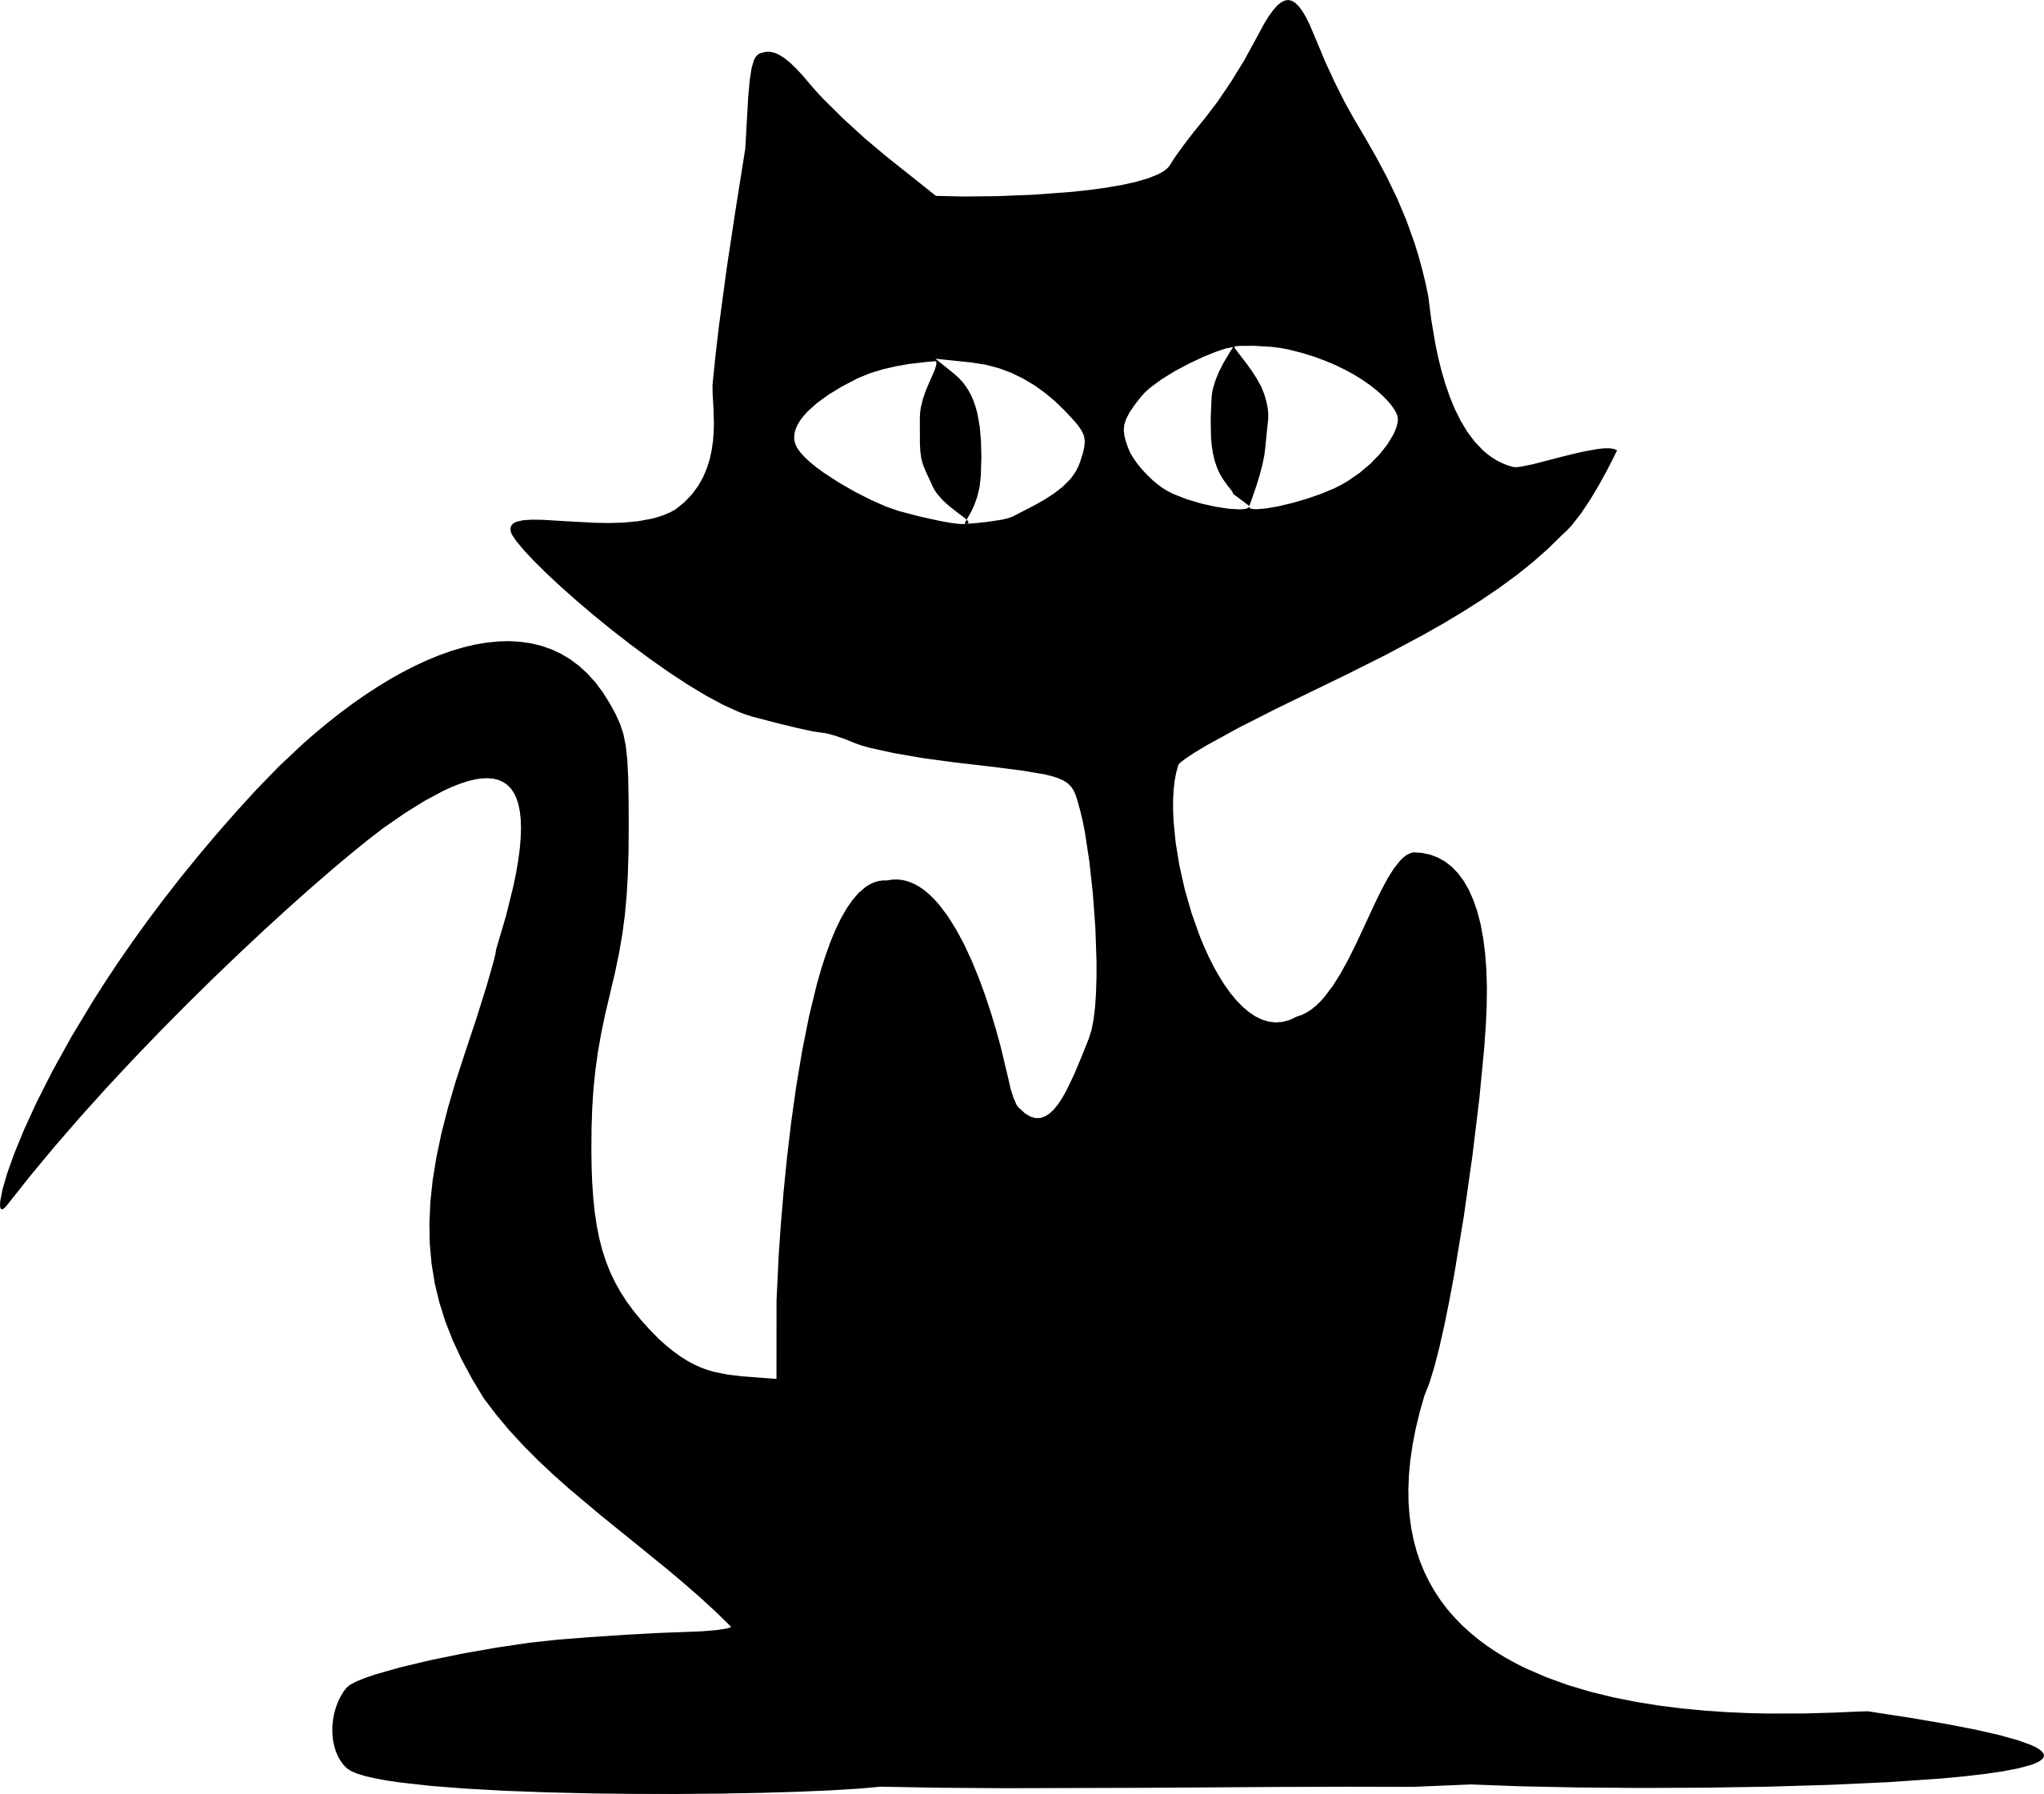 Halloween black and white free black cat clipart halloween clip art images halloween clipart black and white filsize: Free Halloween Cat Images Download Free Halloween Cat Images Png Images Free Cliparts On Clipart Library